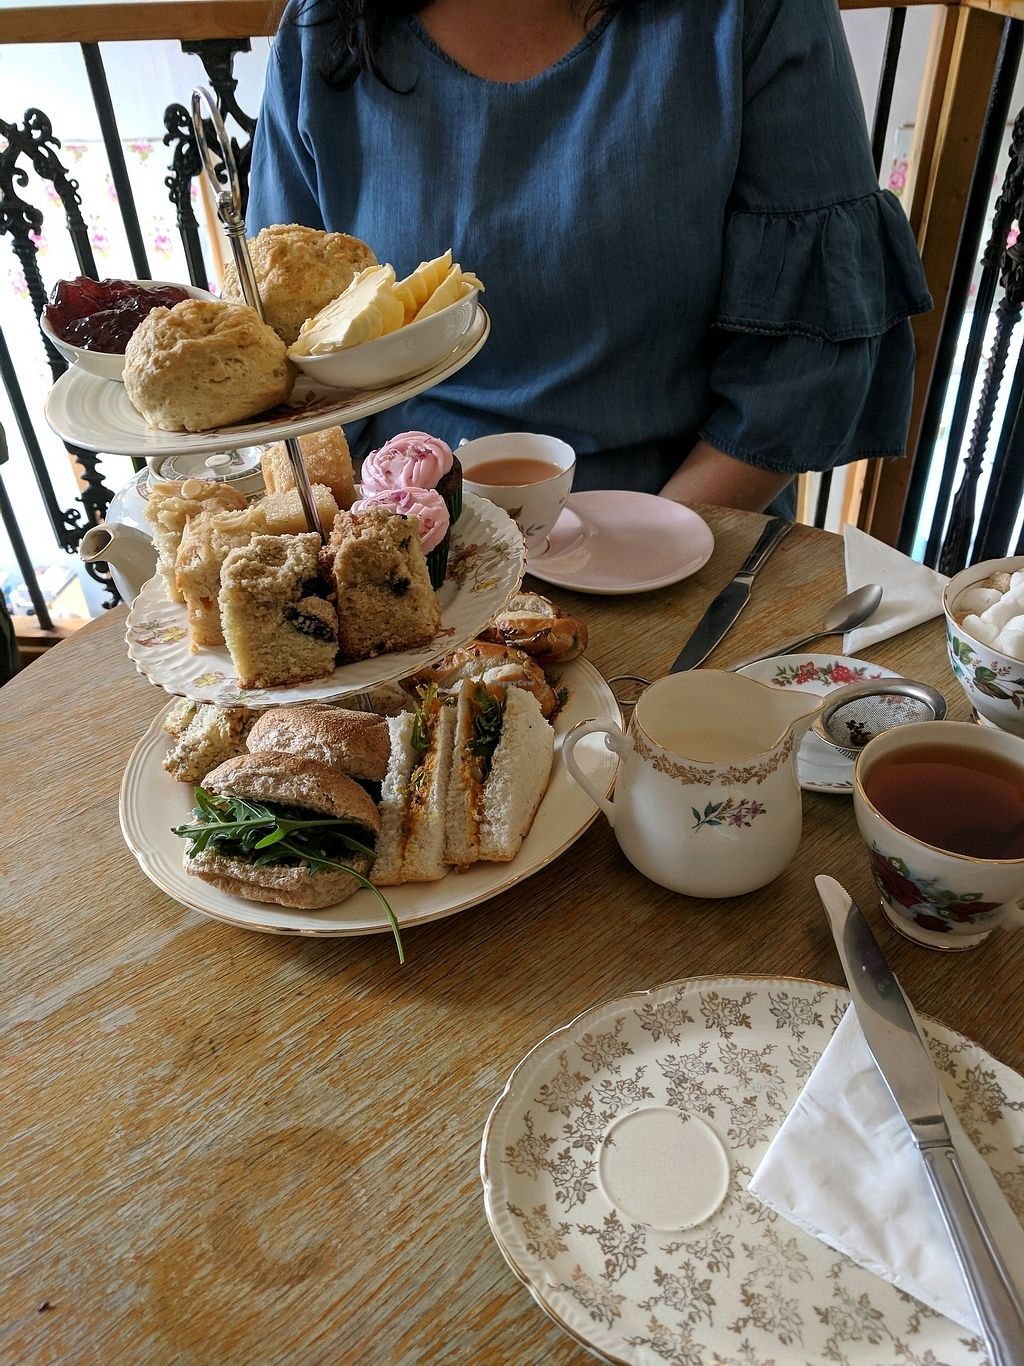 "Photo of Hidden Lane Tea Room  by <a href=""/members/profile/Jalzuri"">Jalzuri</a> <br/>vegan afternoon tea  <br/> March 12, 2018  - <a href='/contact/abuse/image/78990/369843'>Report</a>"